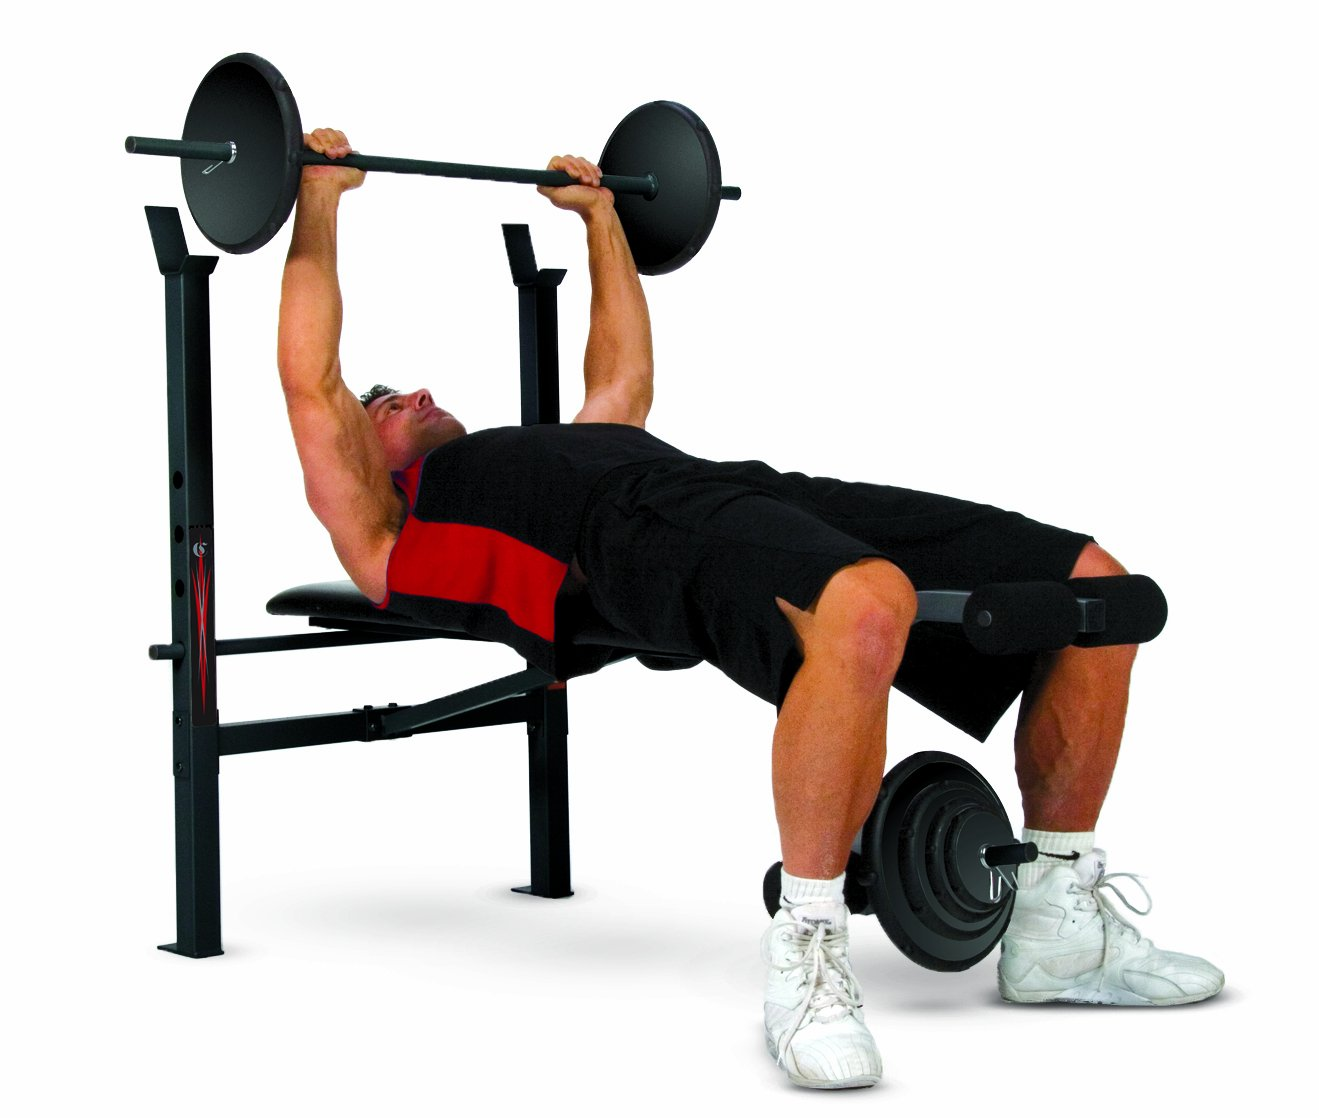 olympic weight full benches template general lb benchmark guide analysis amazon hayneedle pdf ppt example att dicks meaning press motors sporting size for definition competitor tools set benchmarking bench goods